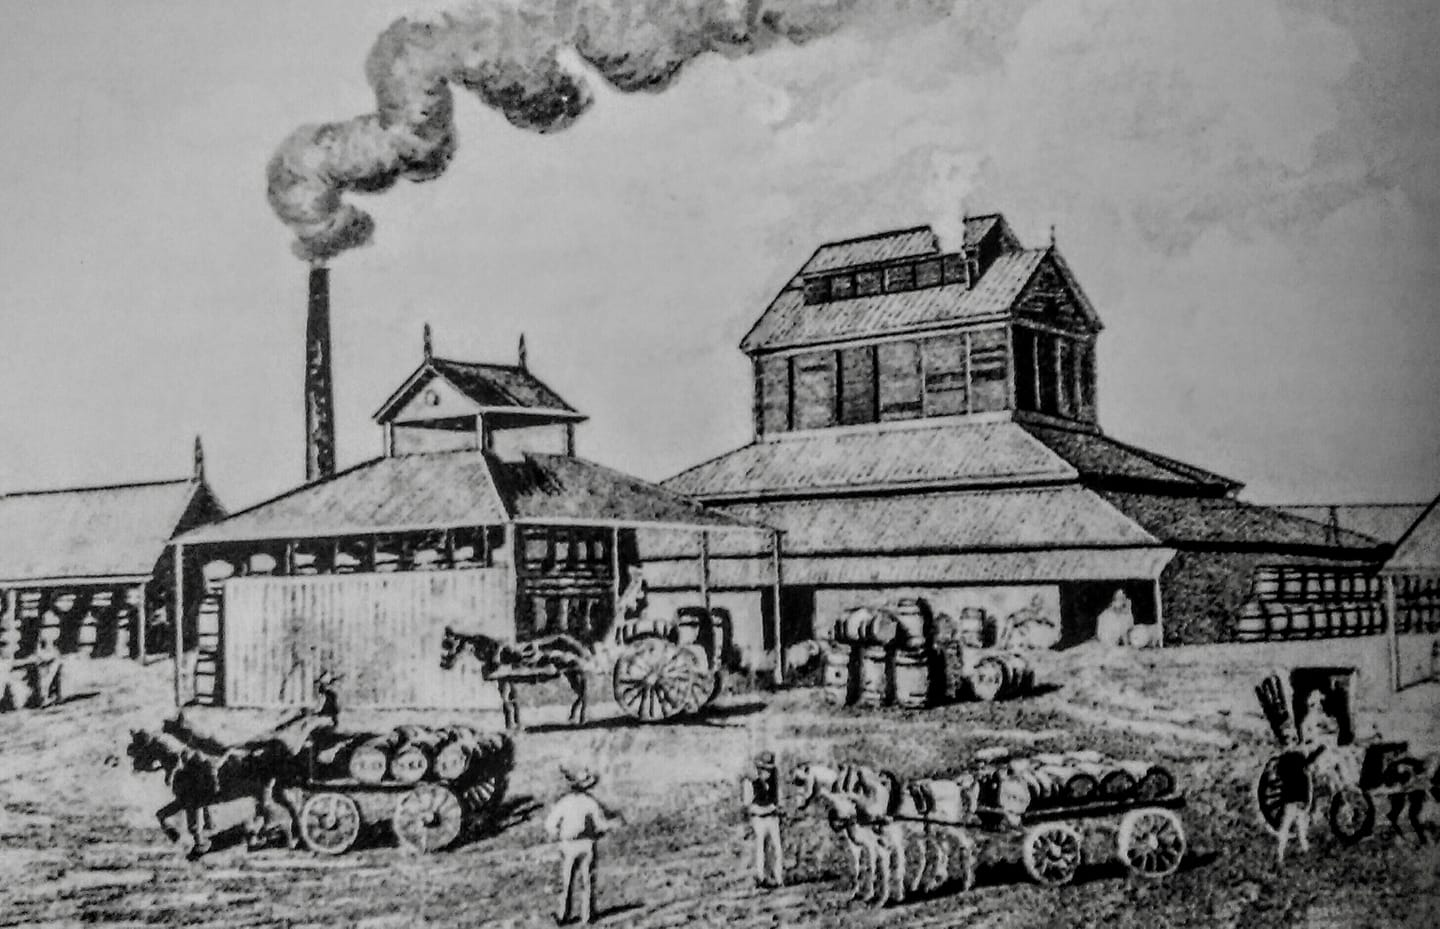 Robert Tooth and Brisbane's Bulimba Brewery